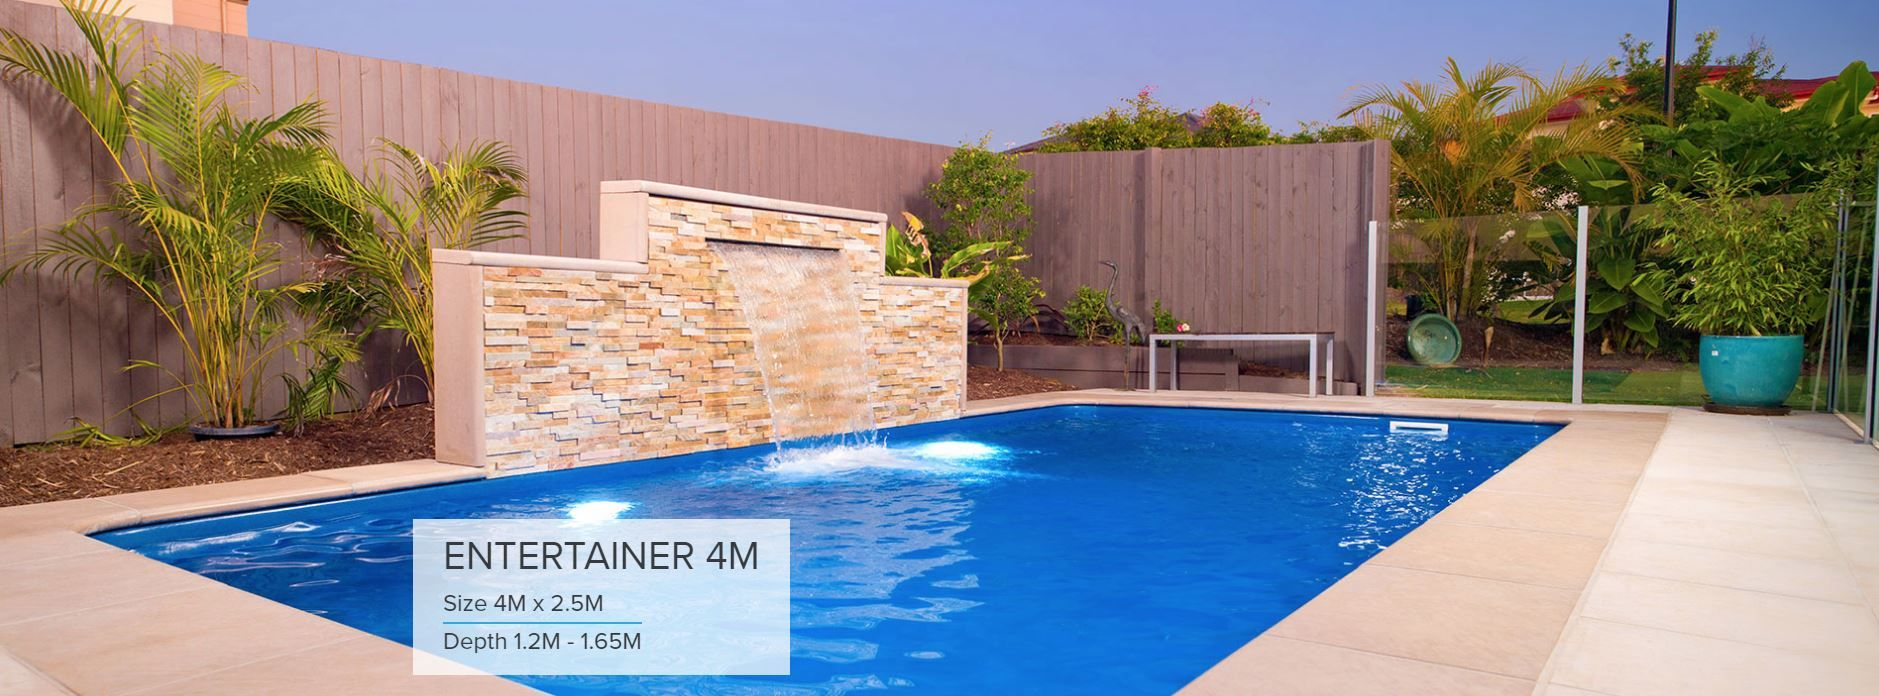 Add A Sense Of Elegance And Class To Your Backyard With One Of Our Entertainer Pools From Cool Swimming Pools Swimming Pools Backyard Fiberglass Swimming Pools